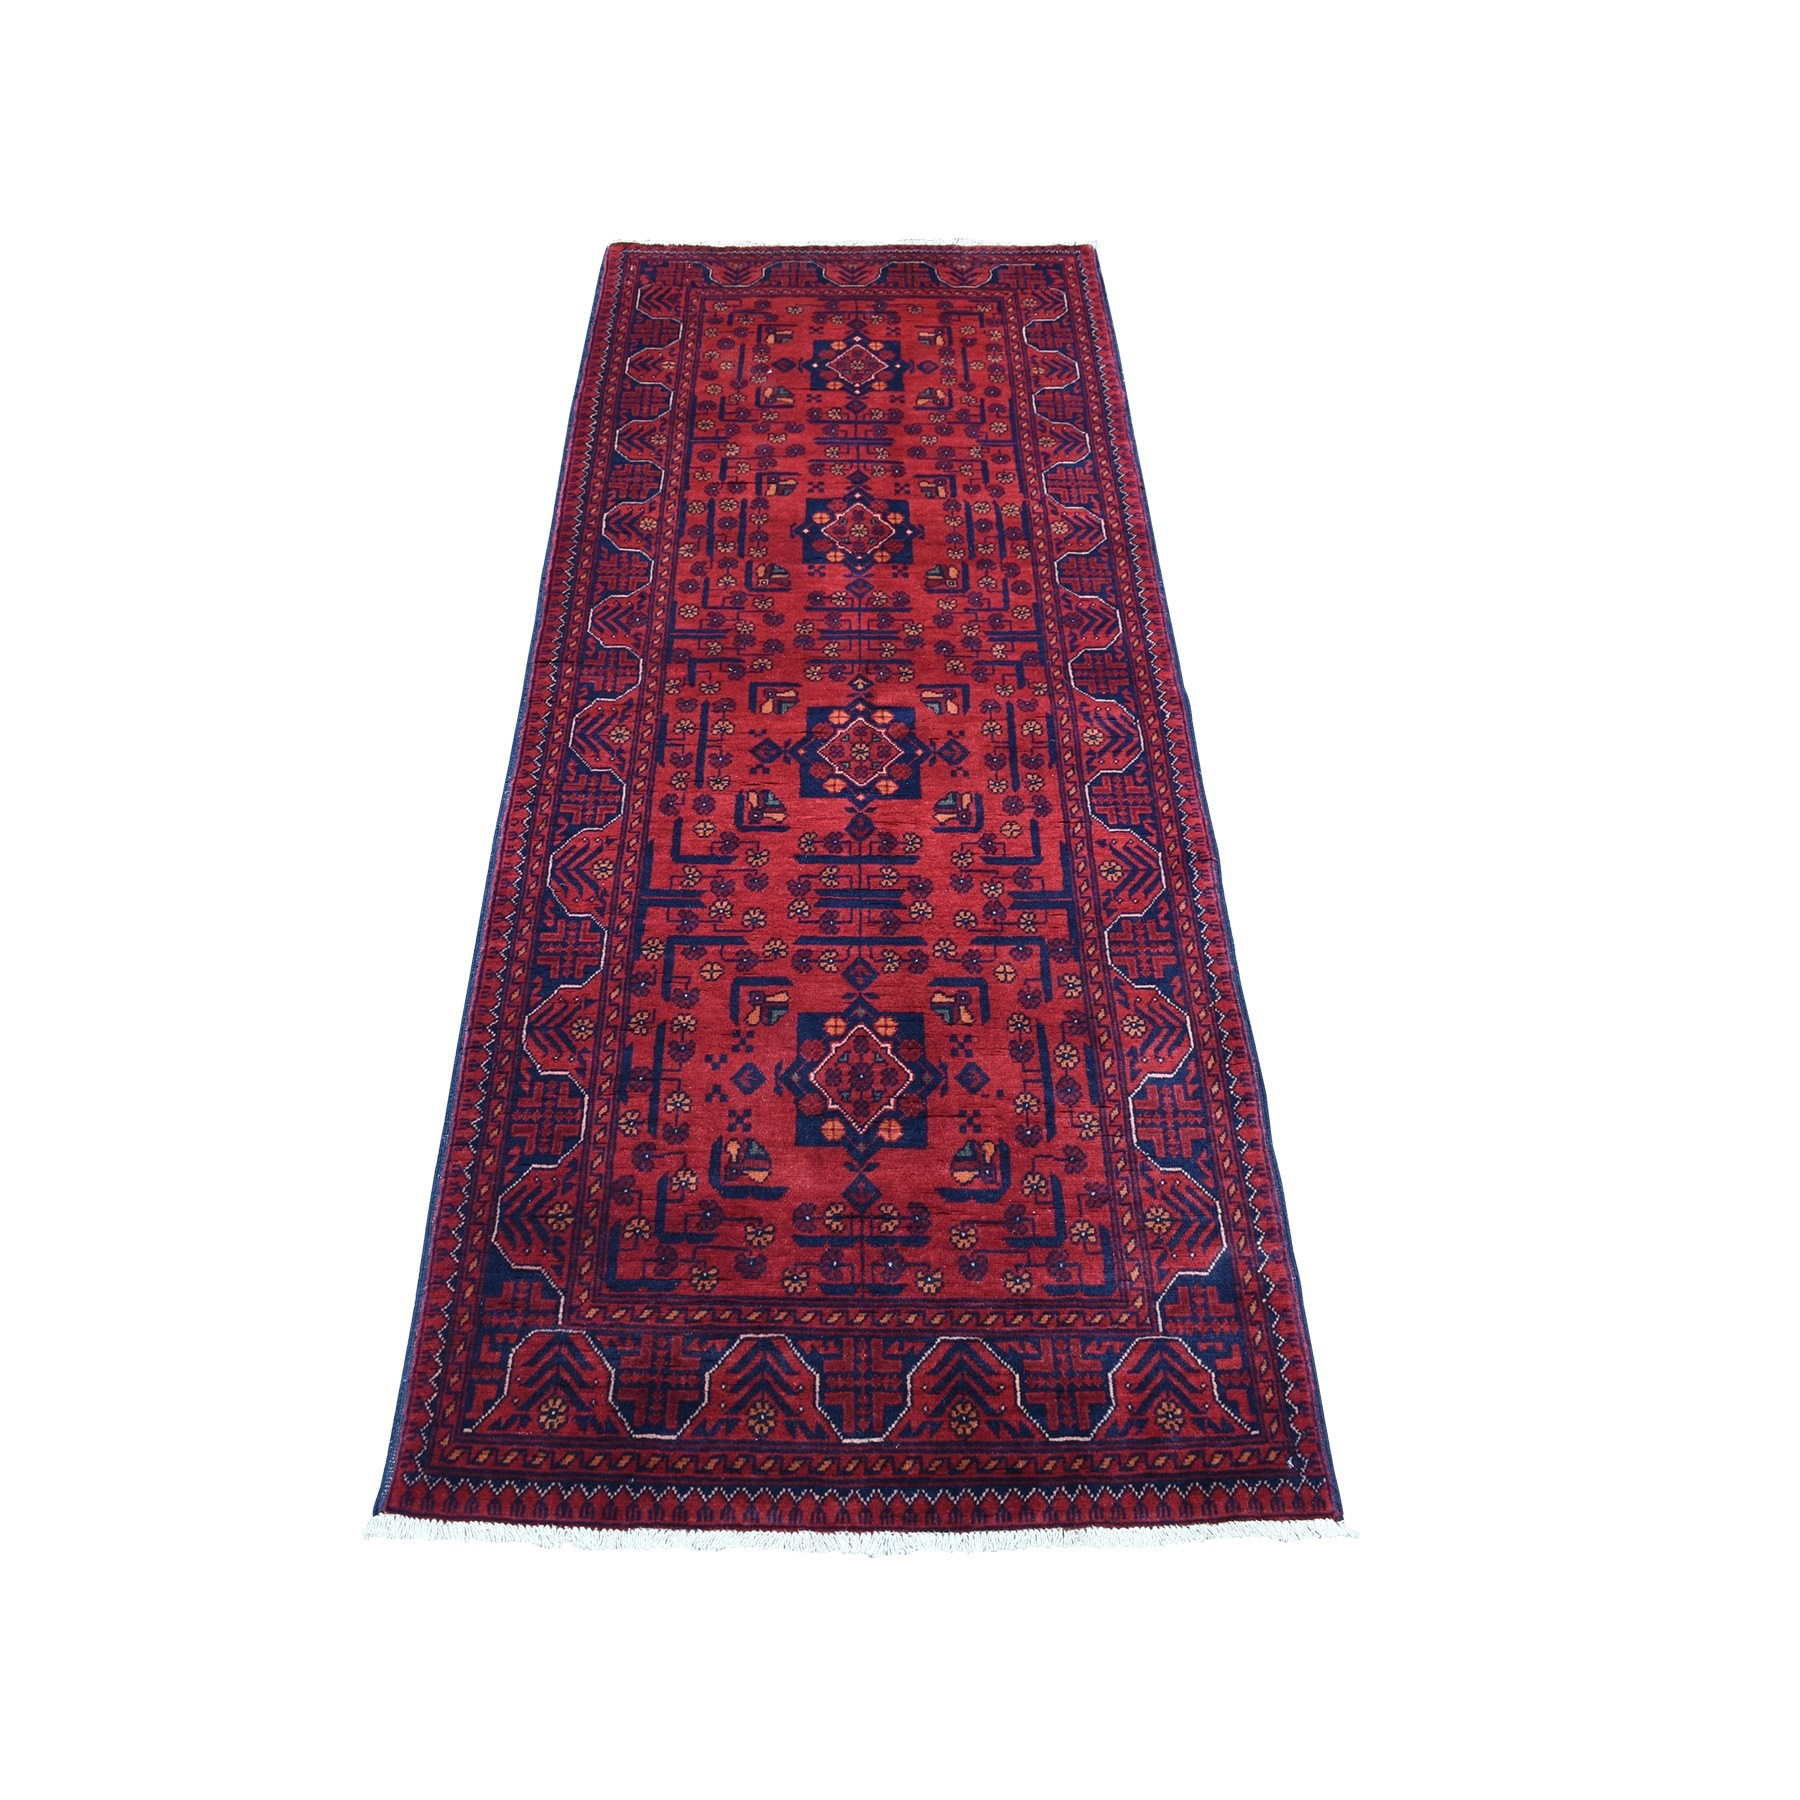 Nomadic And Village Collection Hand Knotted Red Rug No: 1135940